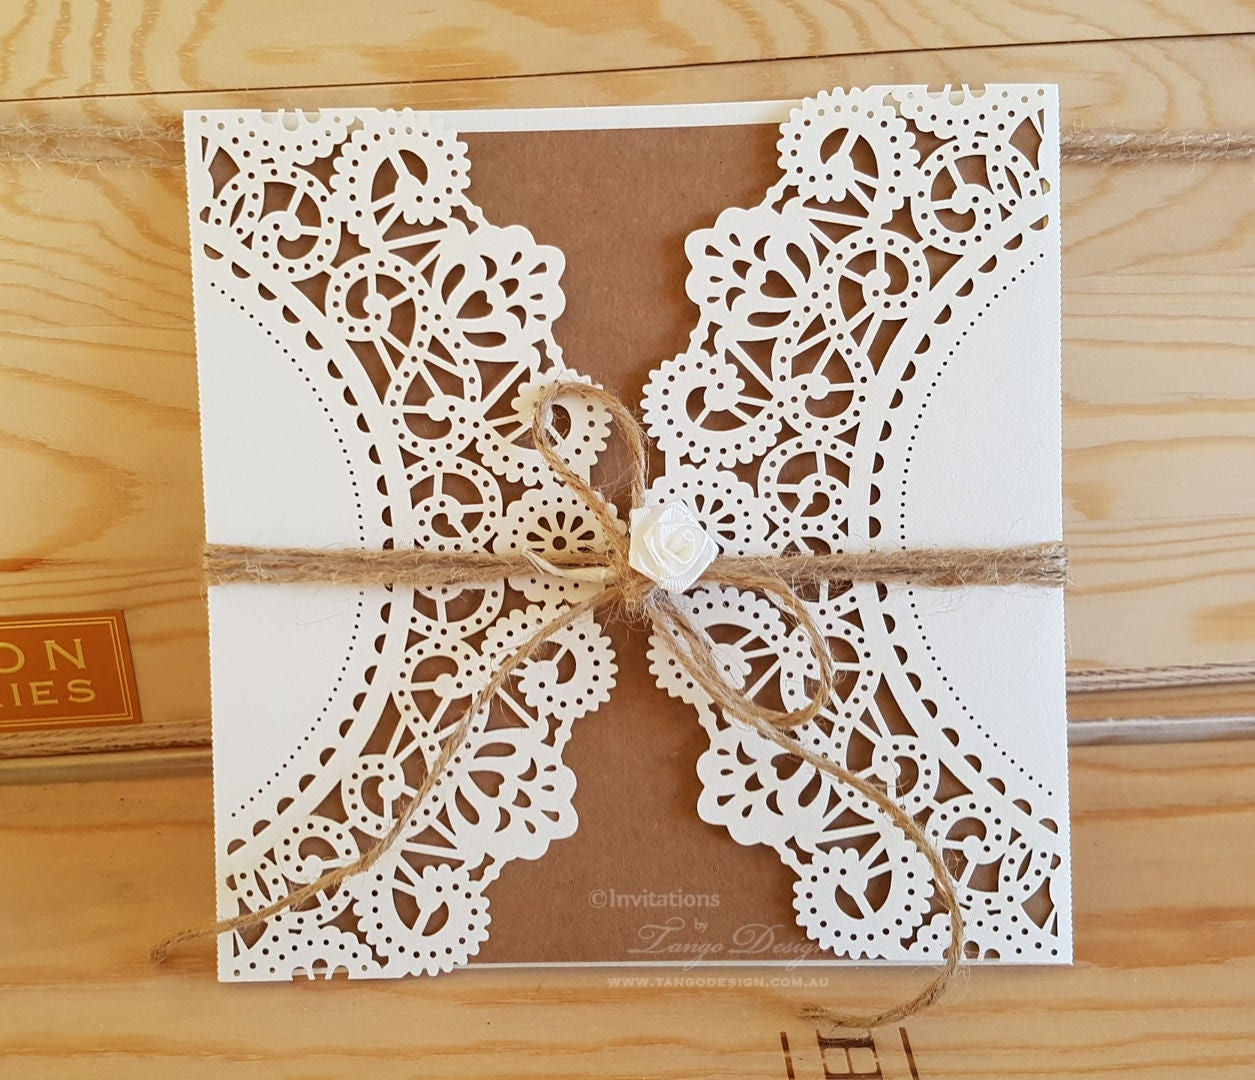 Diy Wedding Invitations Kits: DIY Wedding Invitation Kit. RUSTIC Lace Invitation. DIY